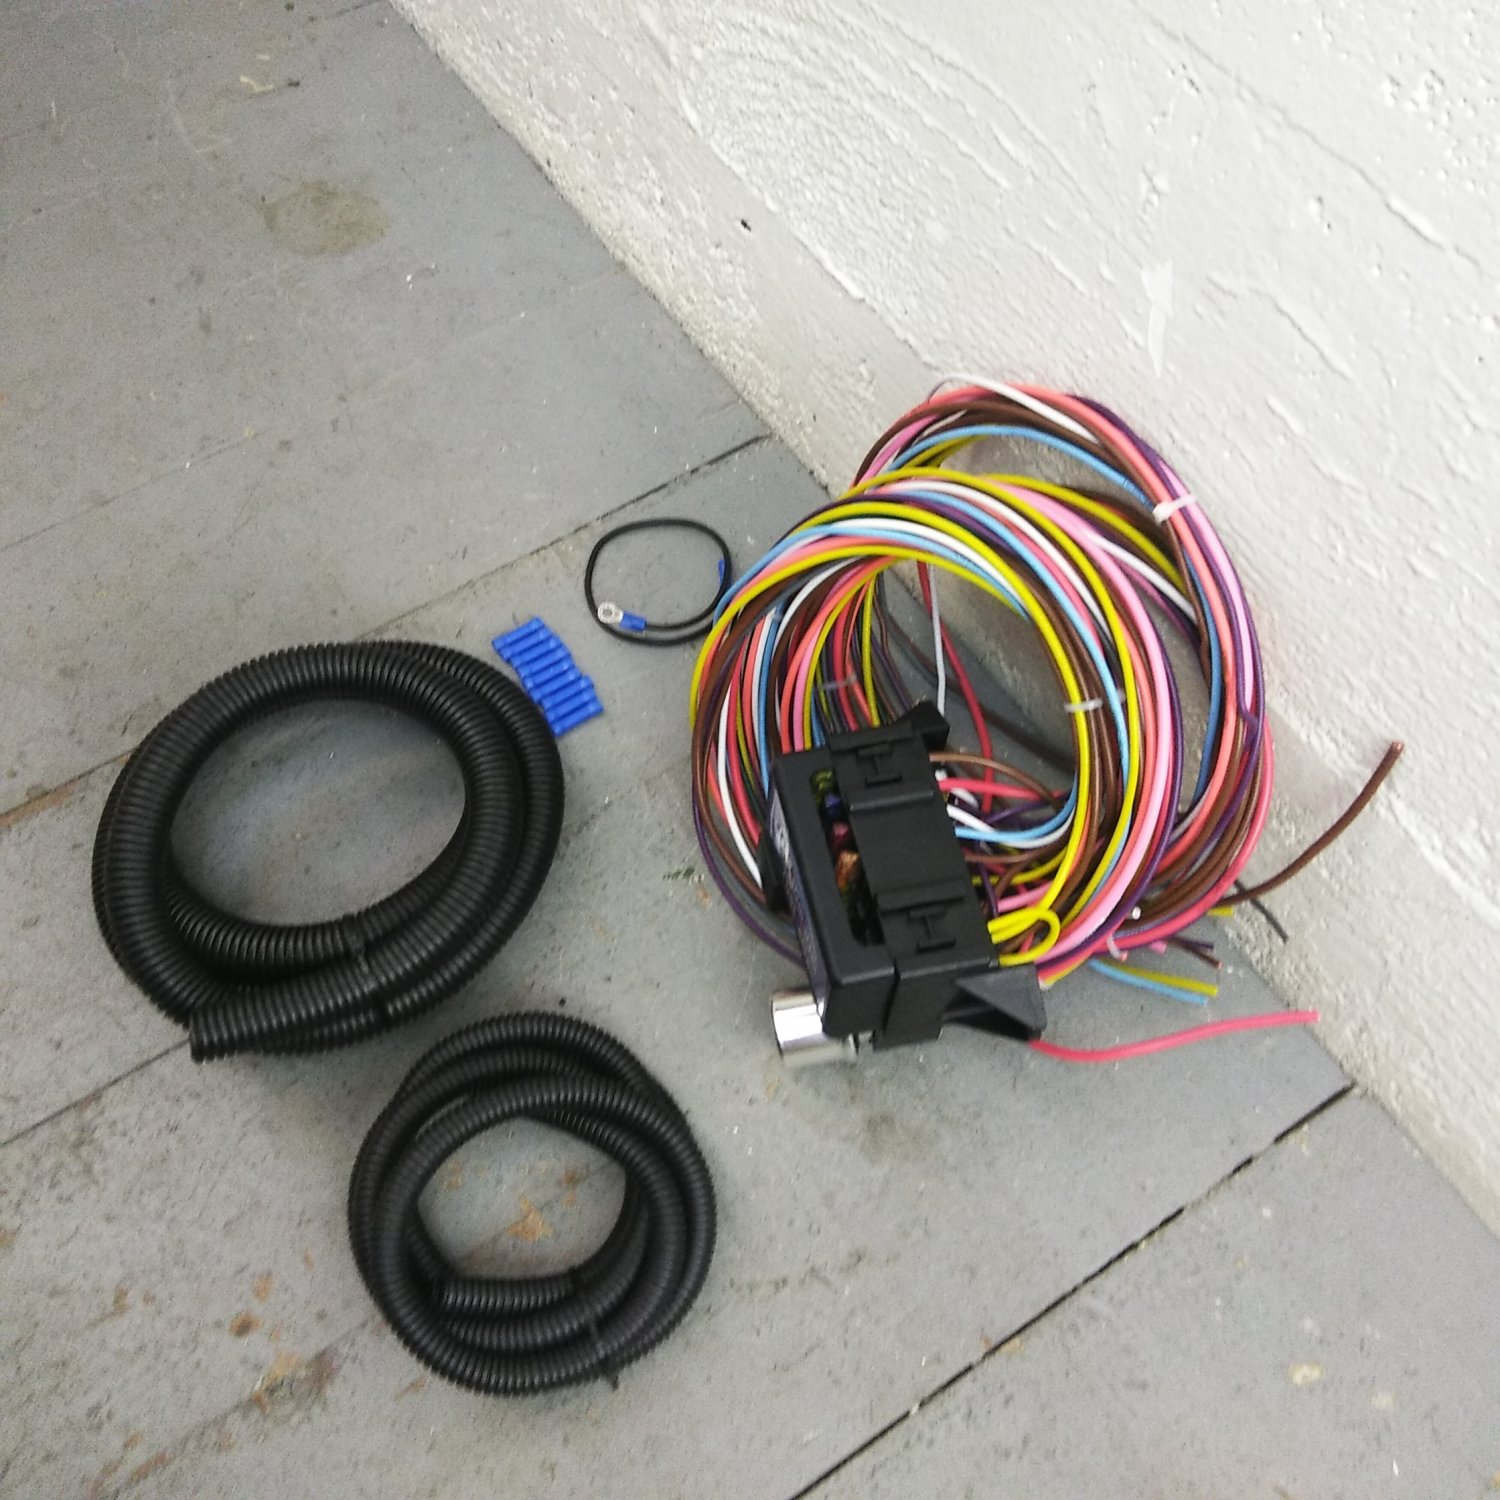 BMW 2002 Series 8 Circuit Wire Harness fits painless terminal complete  fuse. Bar_Product_Description_C